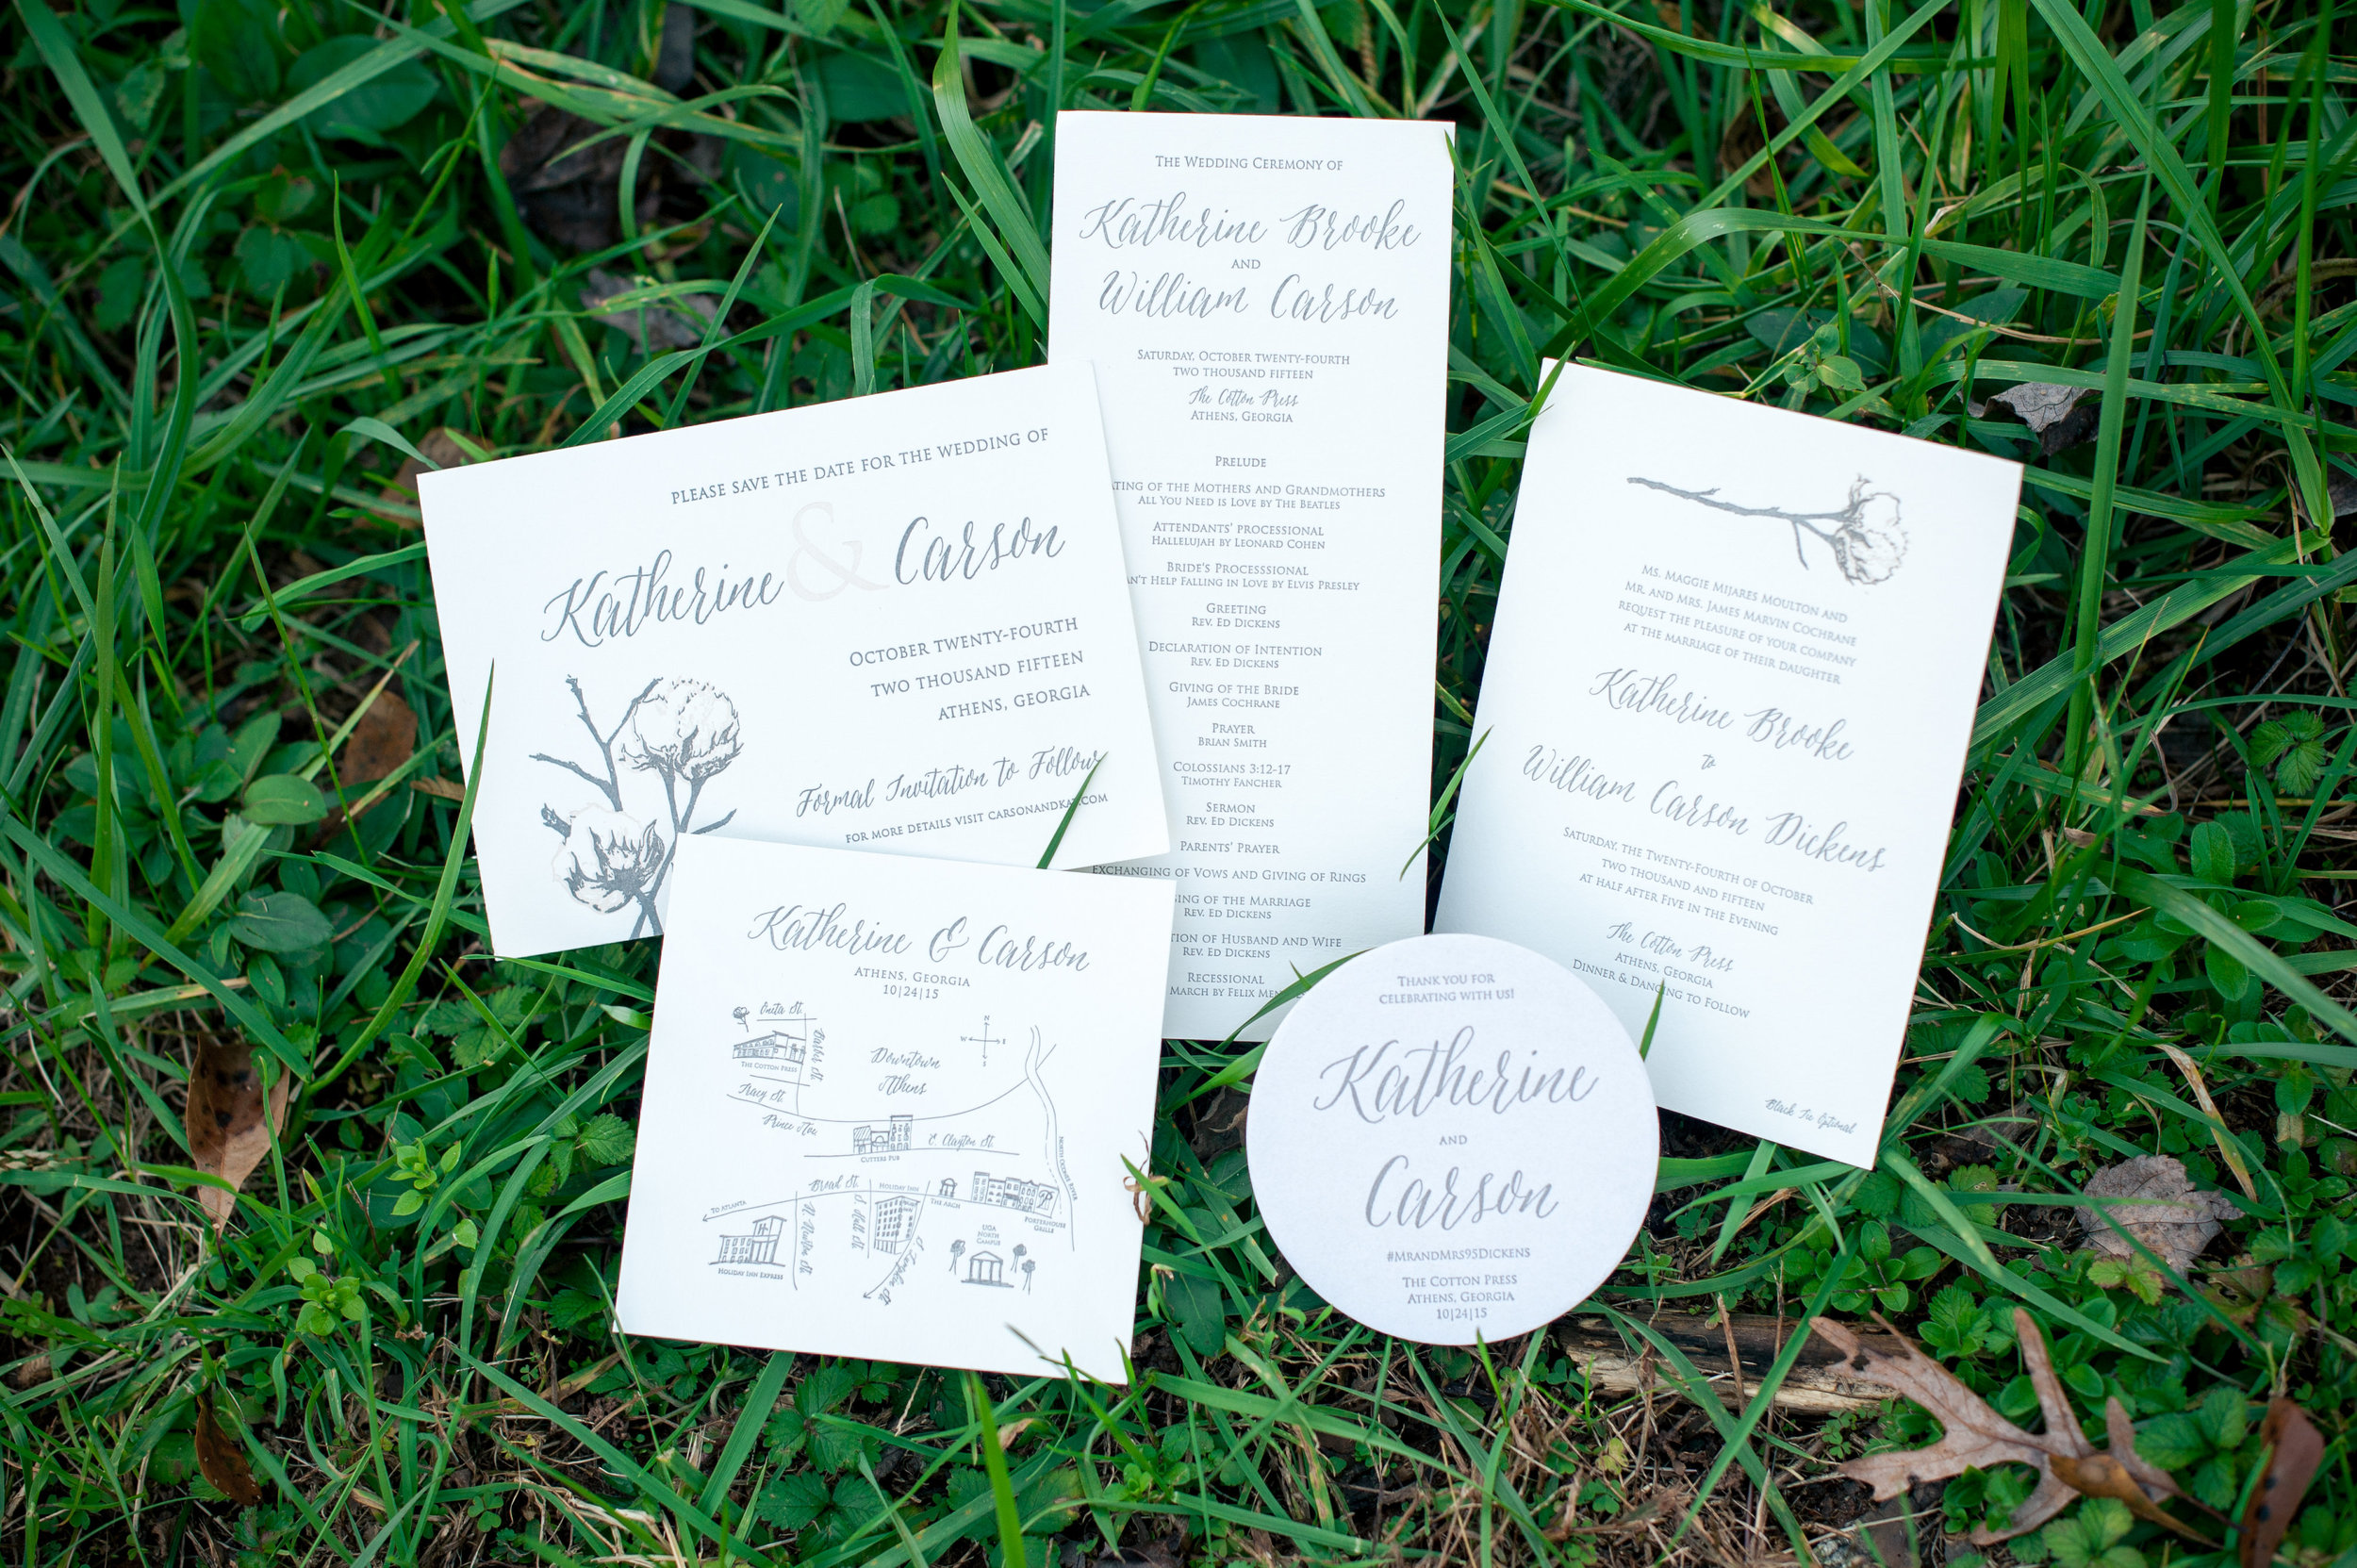 All of the stationary was designed and pressed by the bride and groom, who stayed diligent with some late nights at Smokey Road Press.